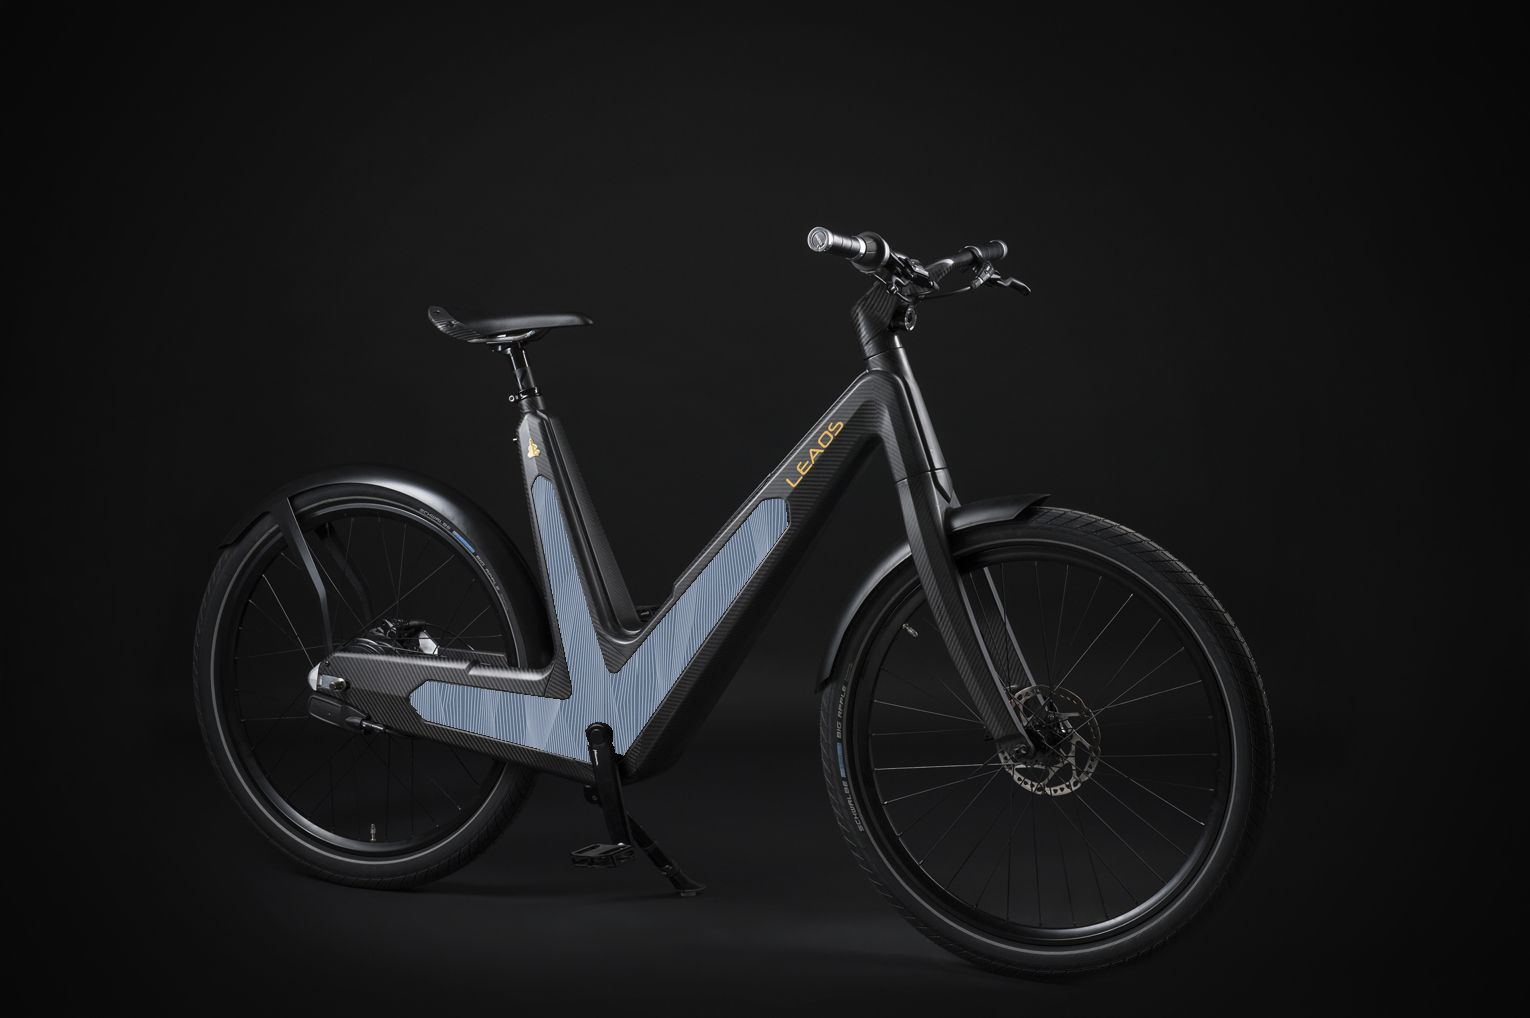 The LEAOS Solar: this E-Bike is the first of its kind to combine solar power with a bicycle frame, and can go up to 20km/day. #icsidrides #solarpowerbike  #bike #energyefficient